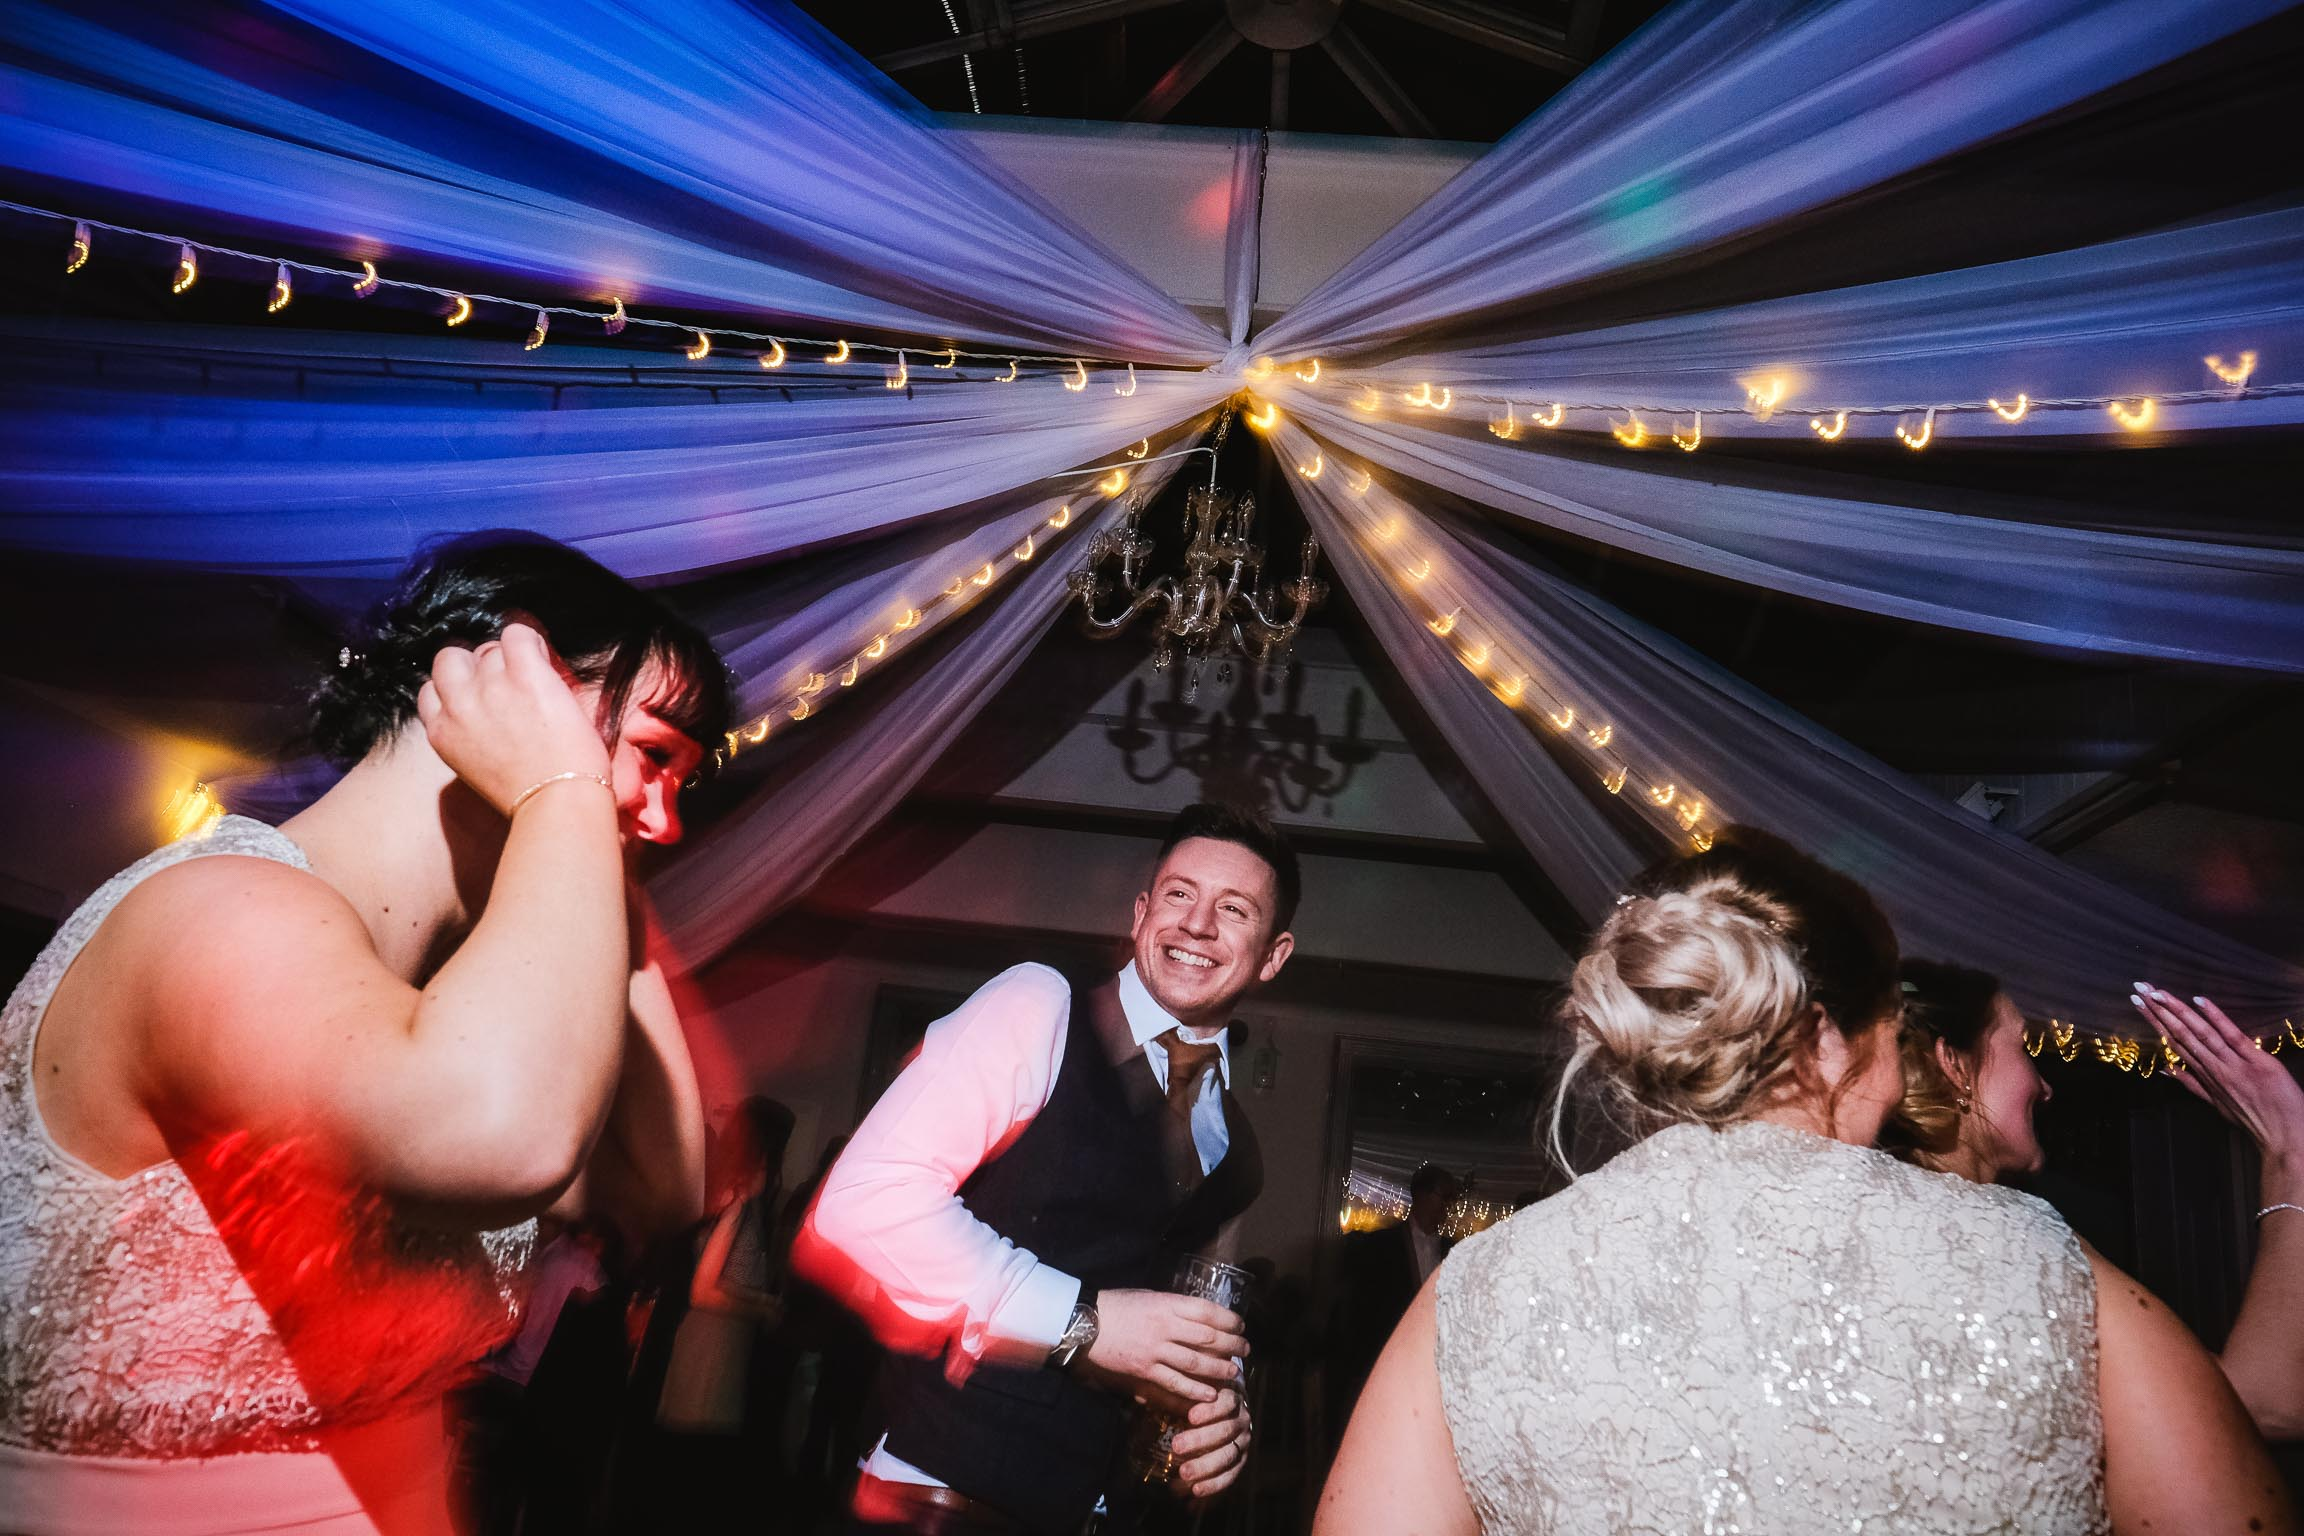 Stirk house clitheroe lancashire wedding photographer covering a documentary photography style  (78 of 85).jpg